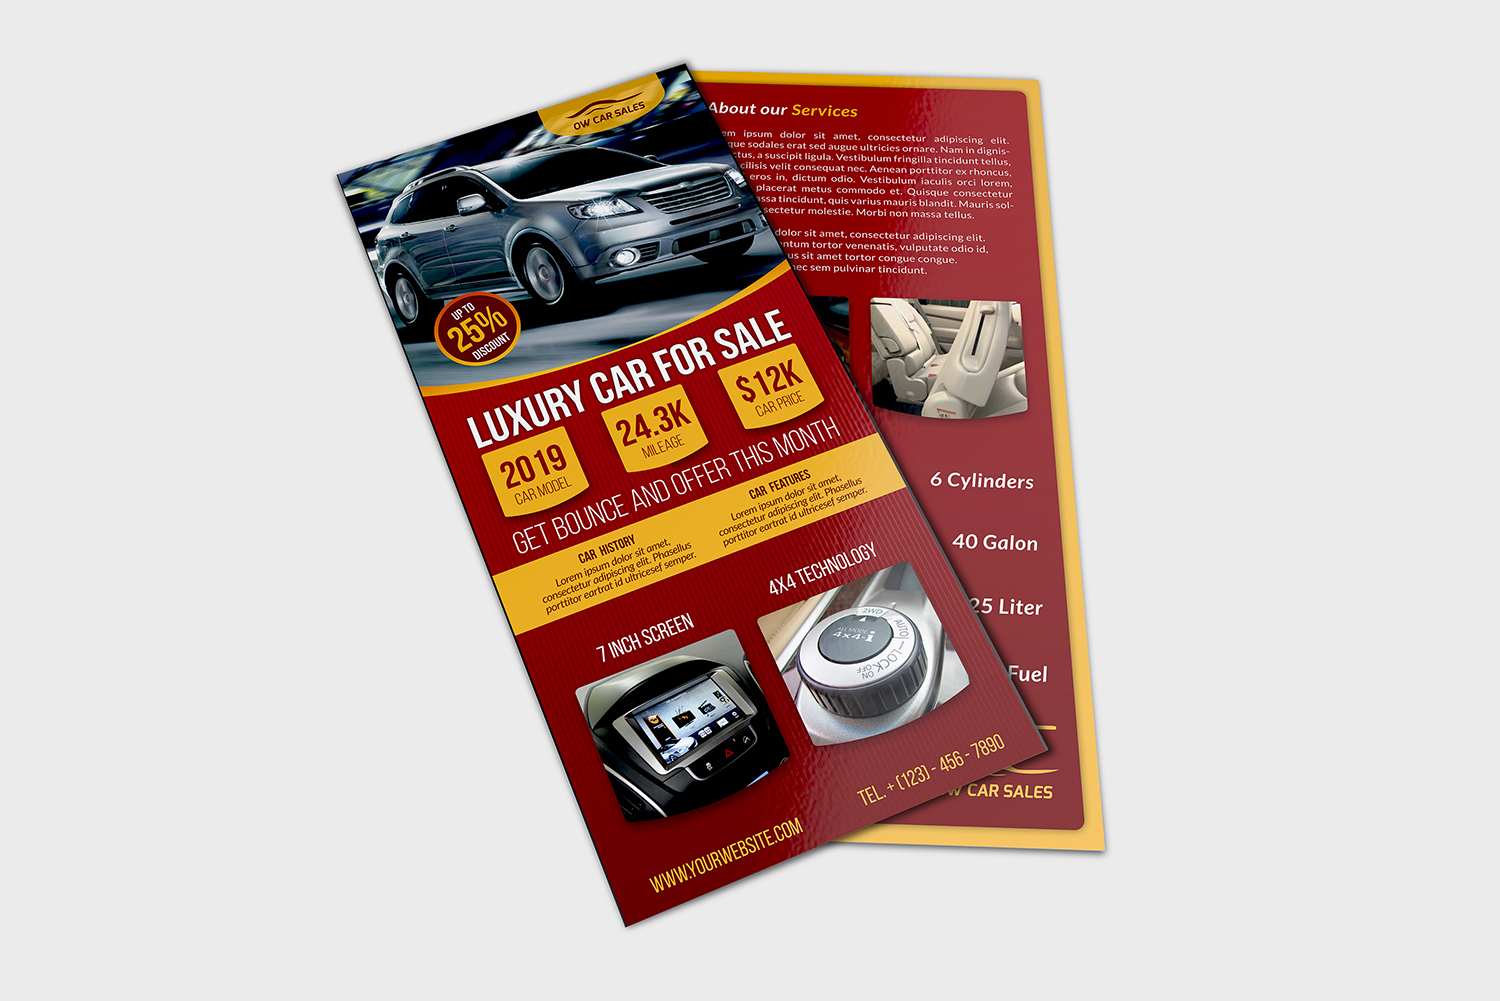 Car for Sale Flyer DL Size Template example image 2